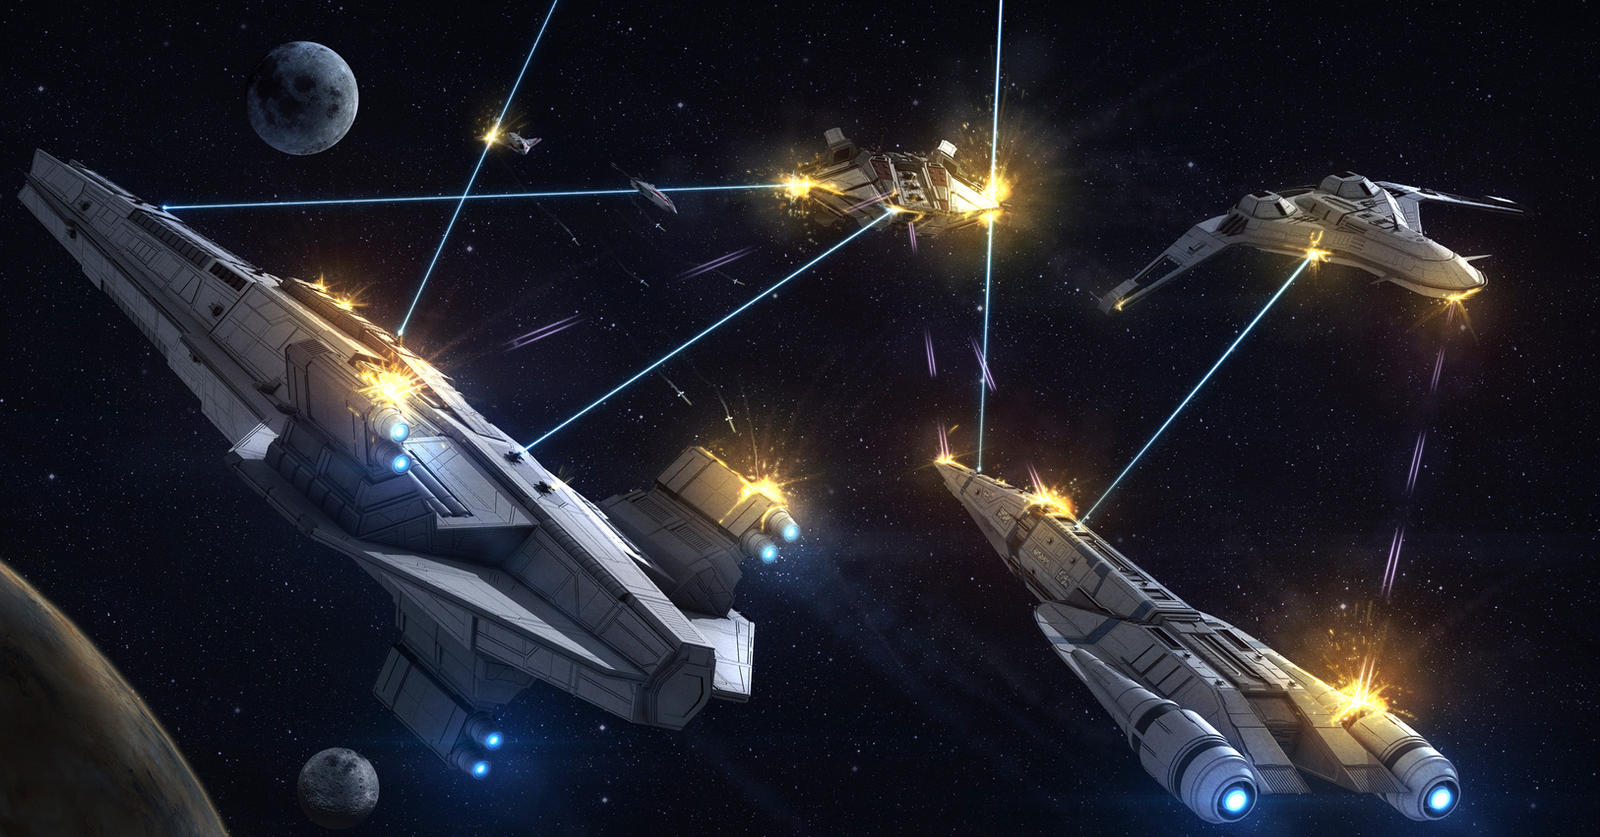 Searched 3d models for SciFi Cruiser